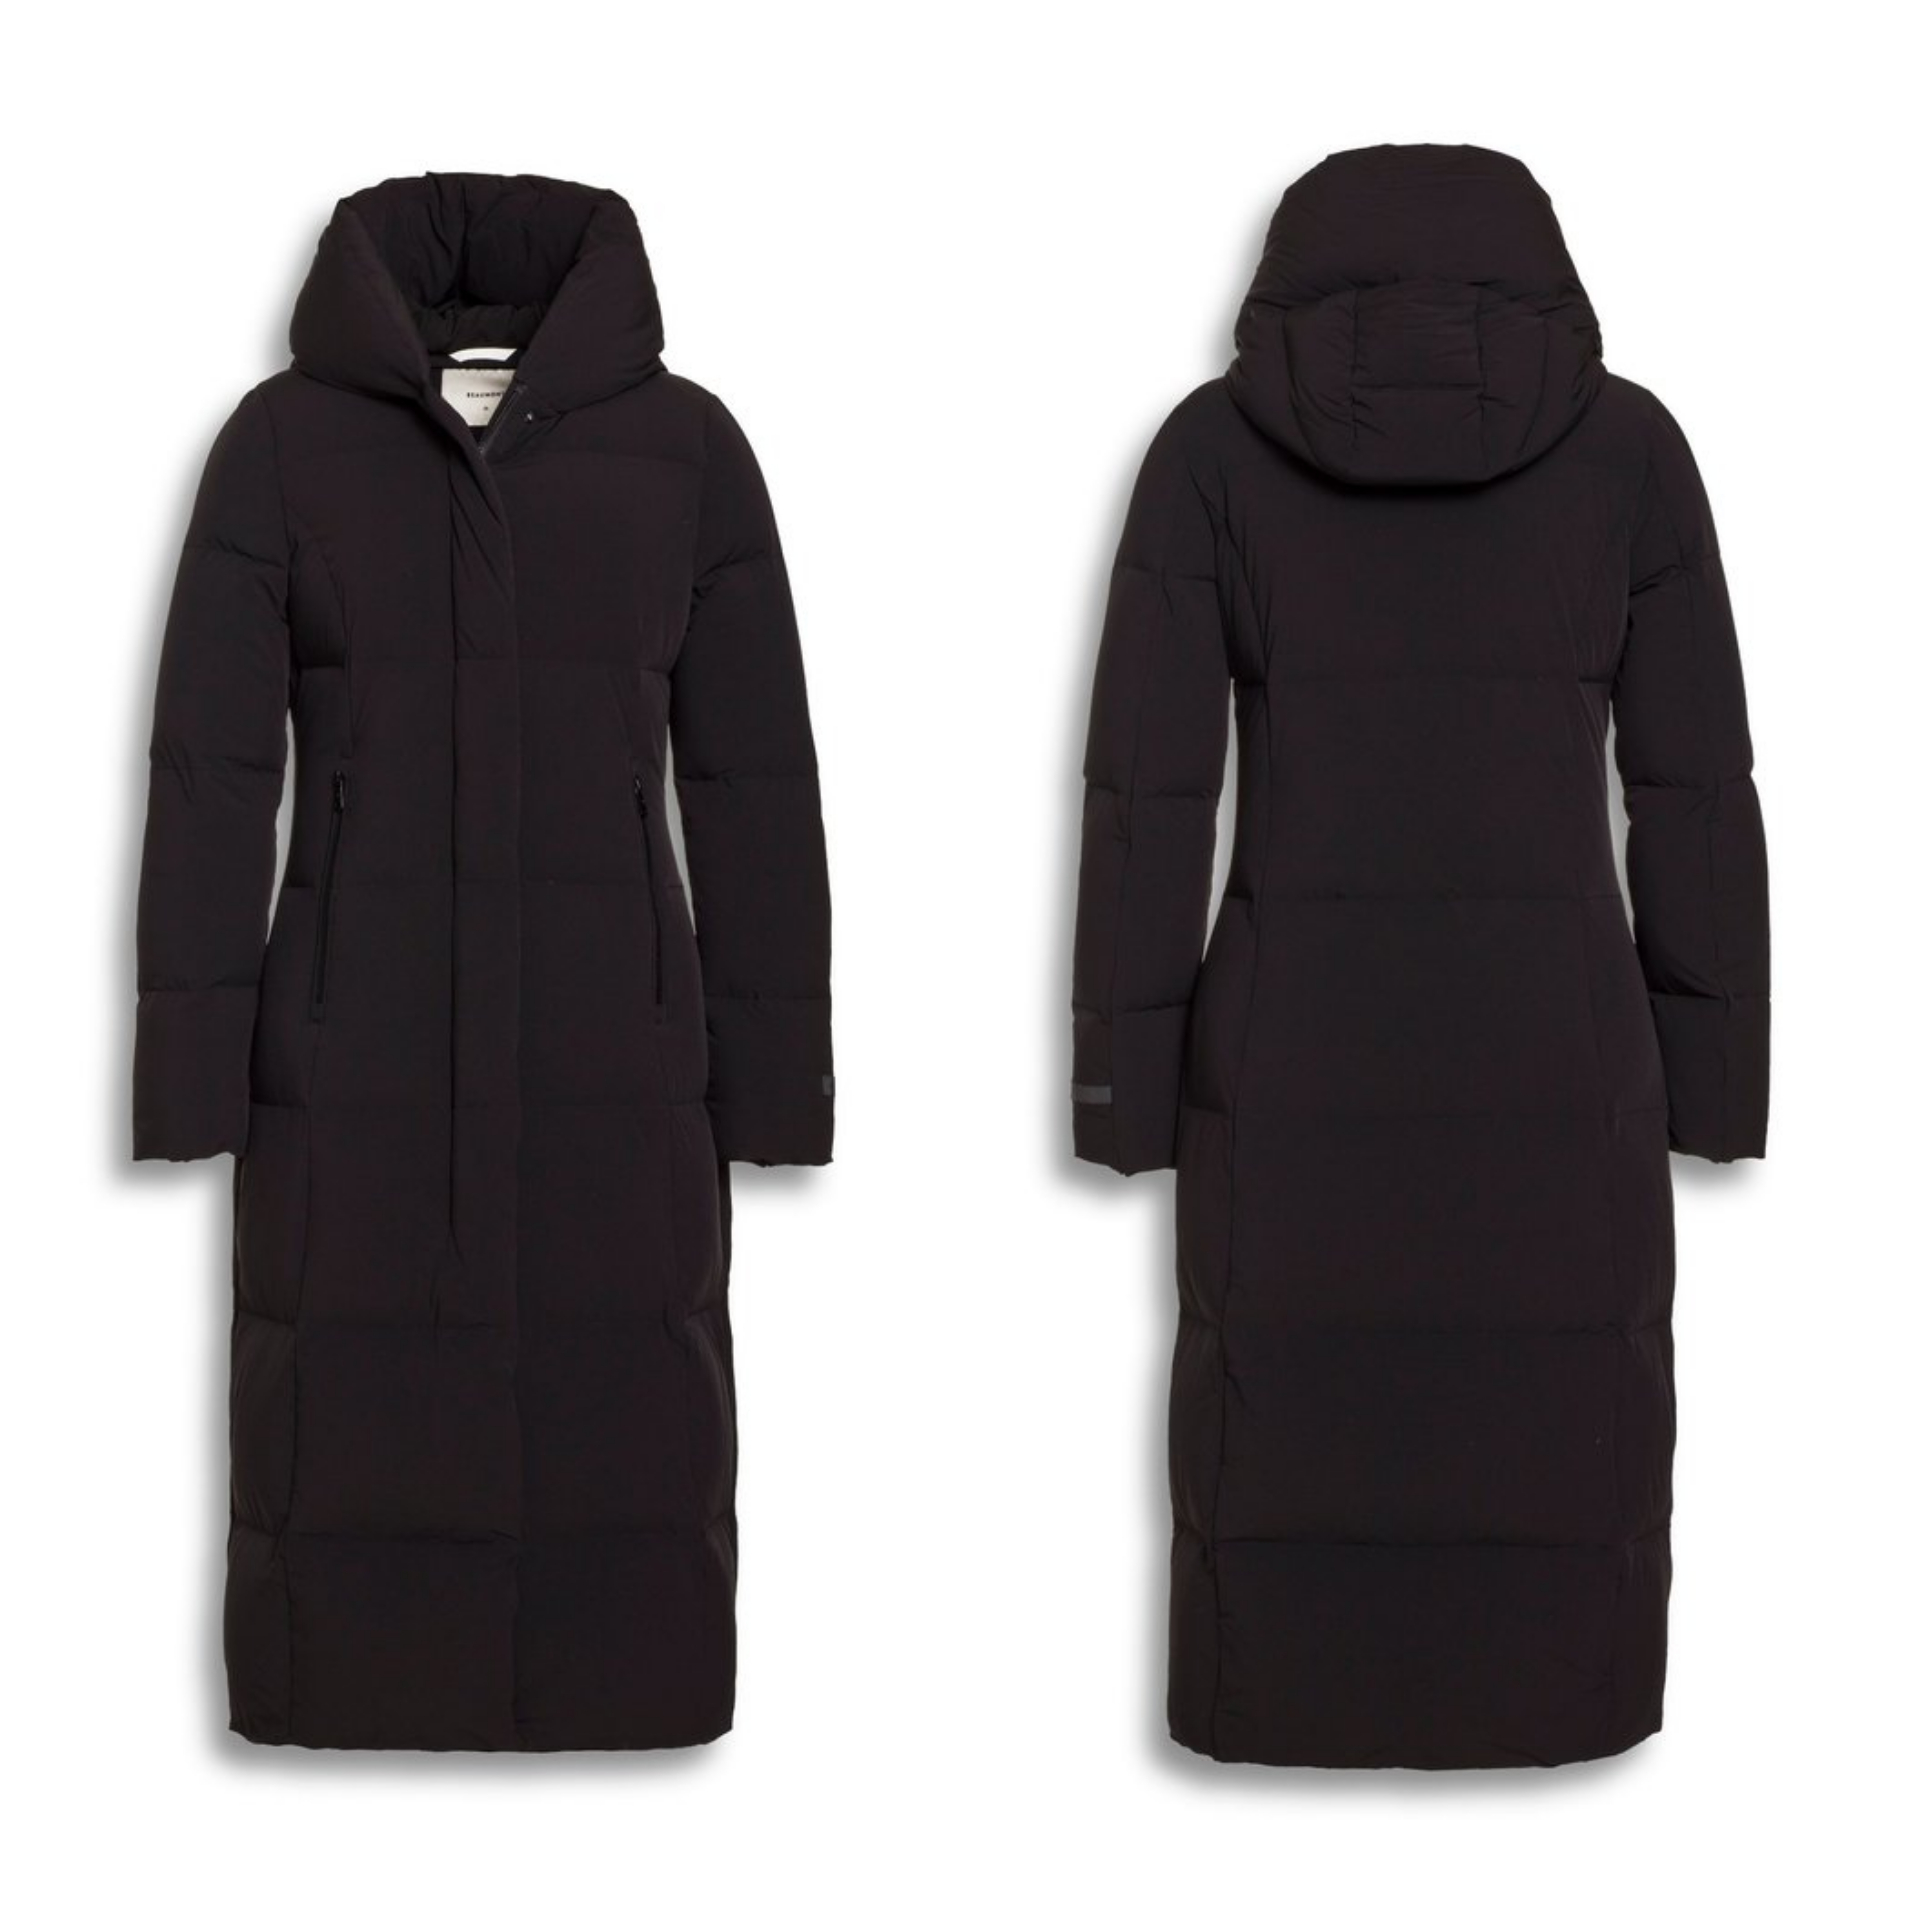 BEAUMONT Bi-Stretch Long Coat